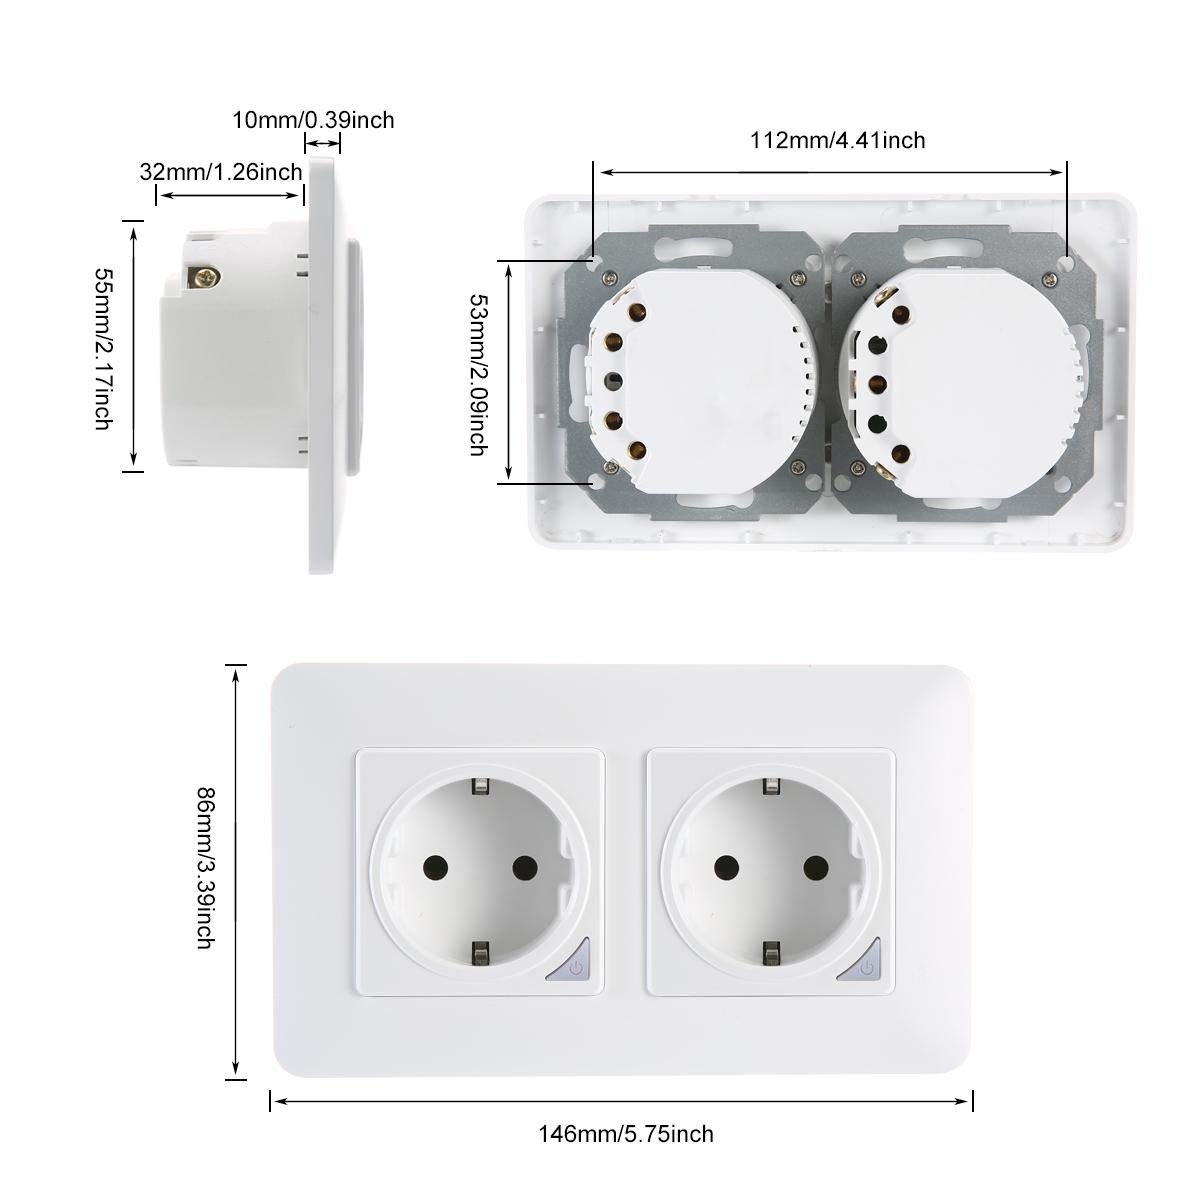 Compatible con Alexa Echo No Requiere Smart Plug 2pack Marco magn/ético Smart Life Schuko Enchufe Temporizador con Control Remoto Google Home y IFTTT TEEKAR Enchufe Pared Inteligente WiFi Alexa